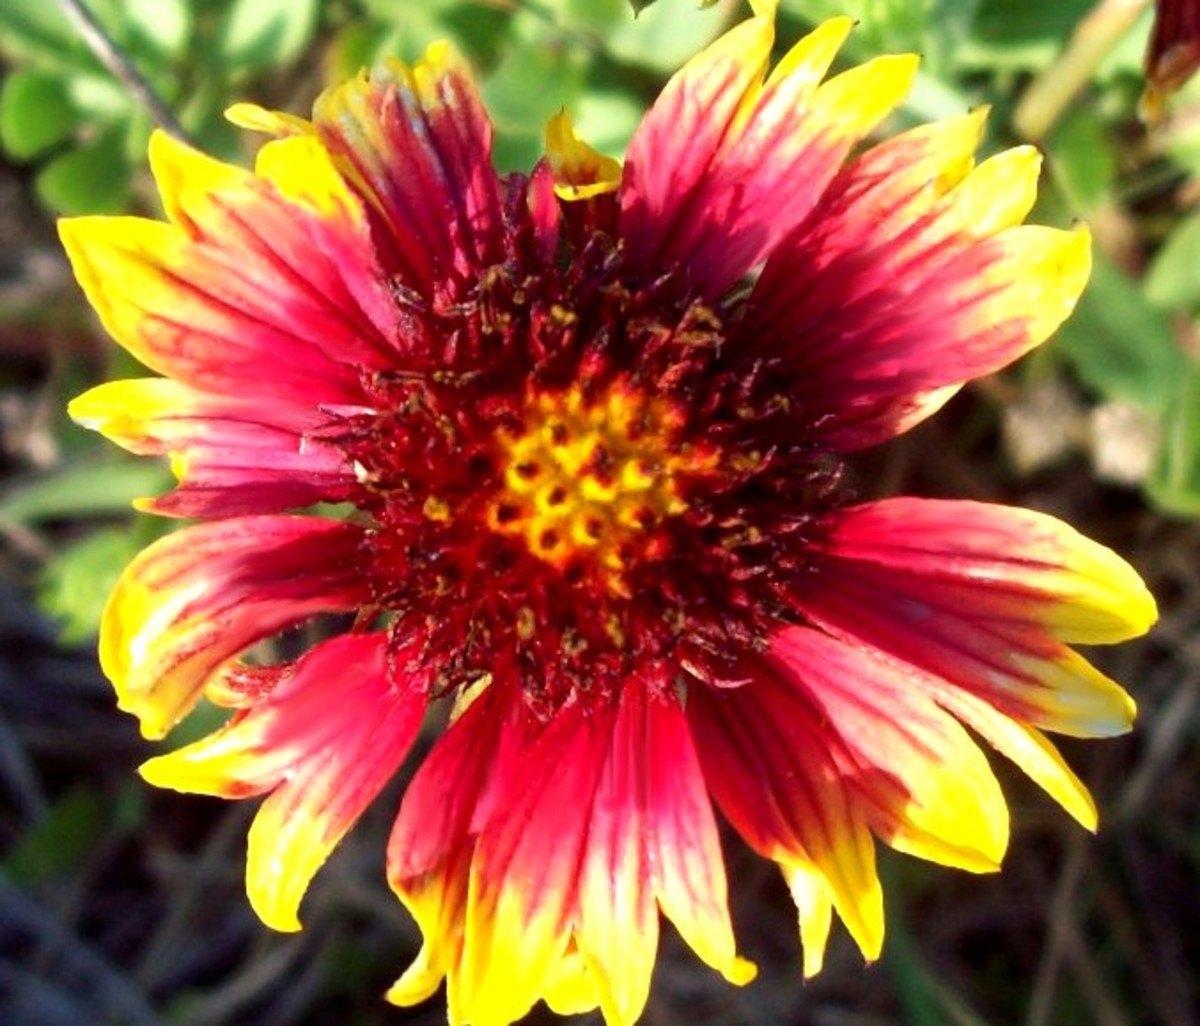 A beautiful gaillardia flower on Ocracoke Island.